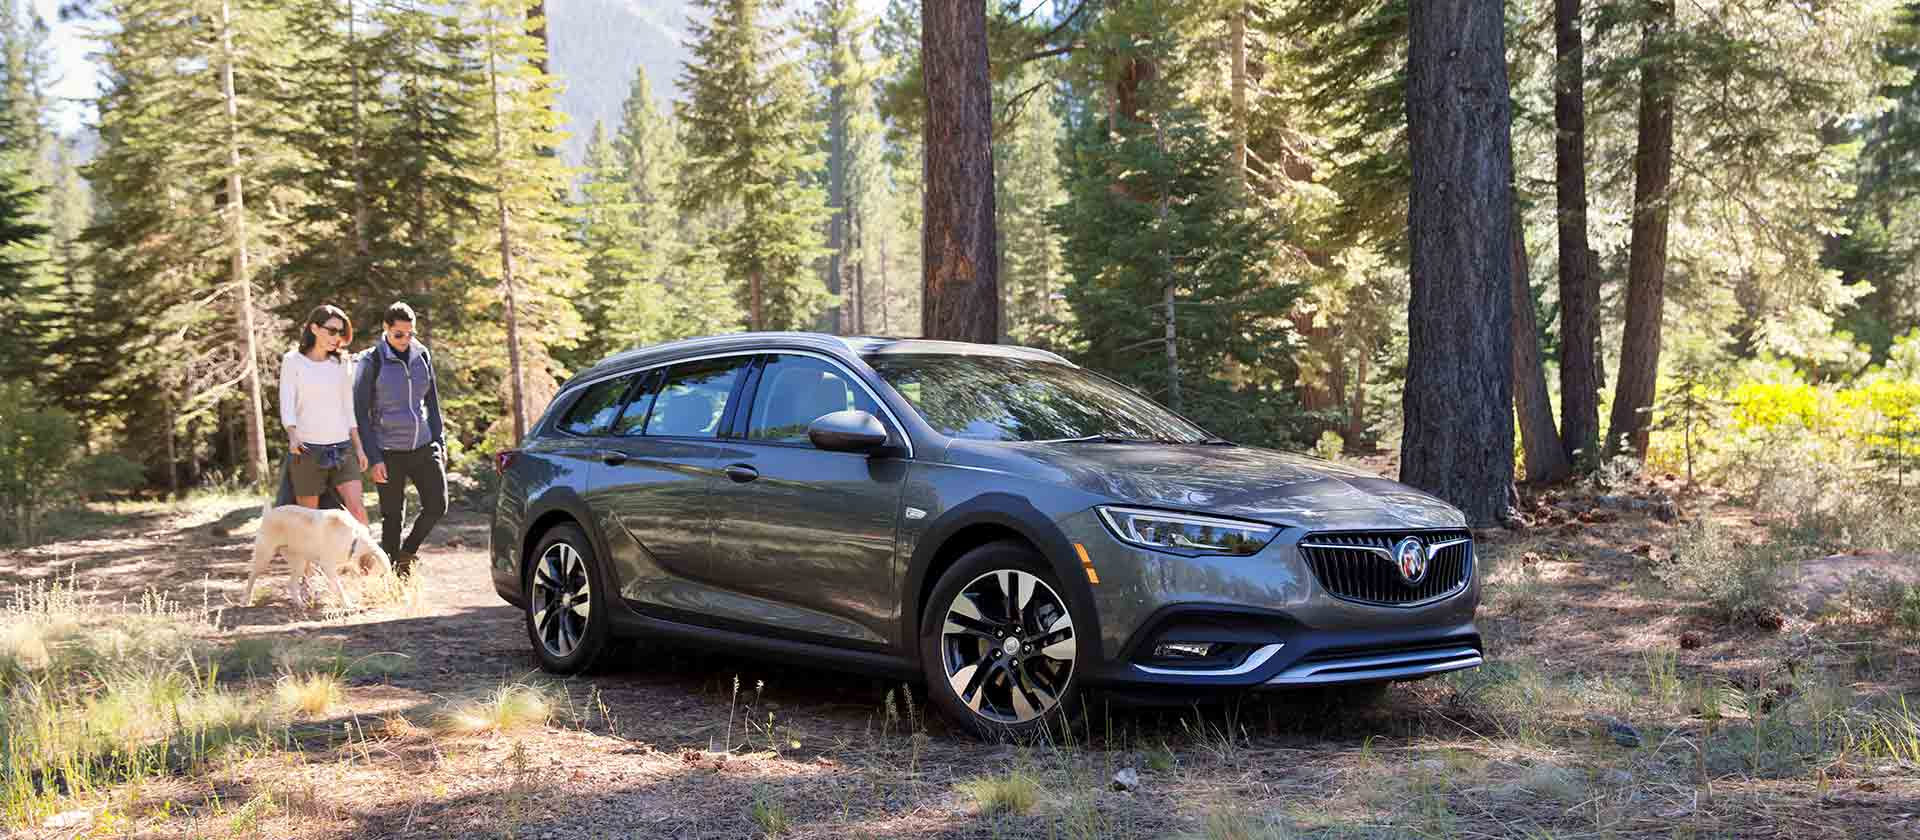 2018 Buick Regal TourX Overview - The News Wheel